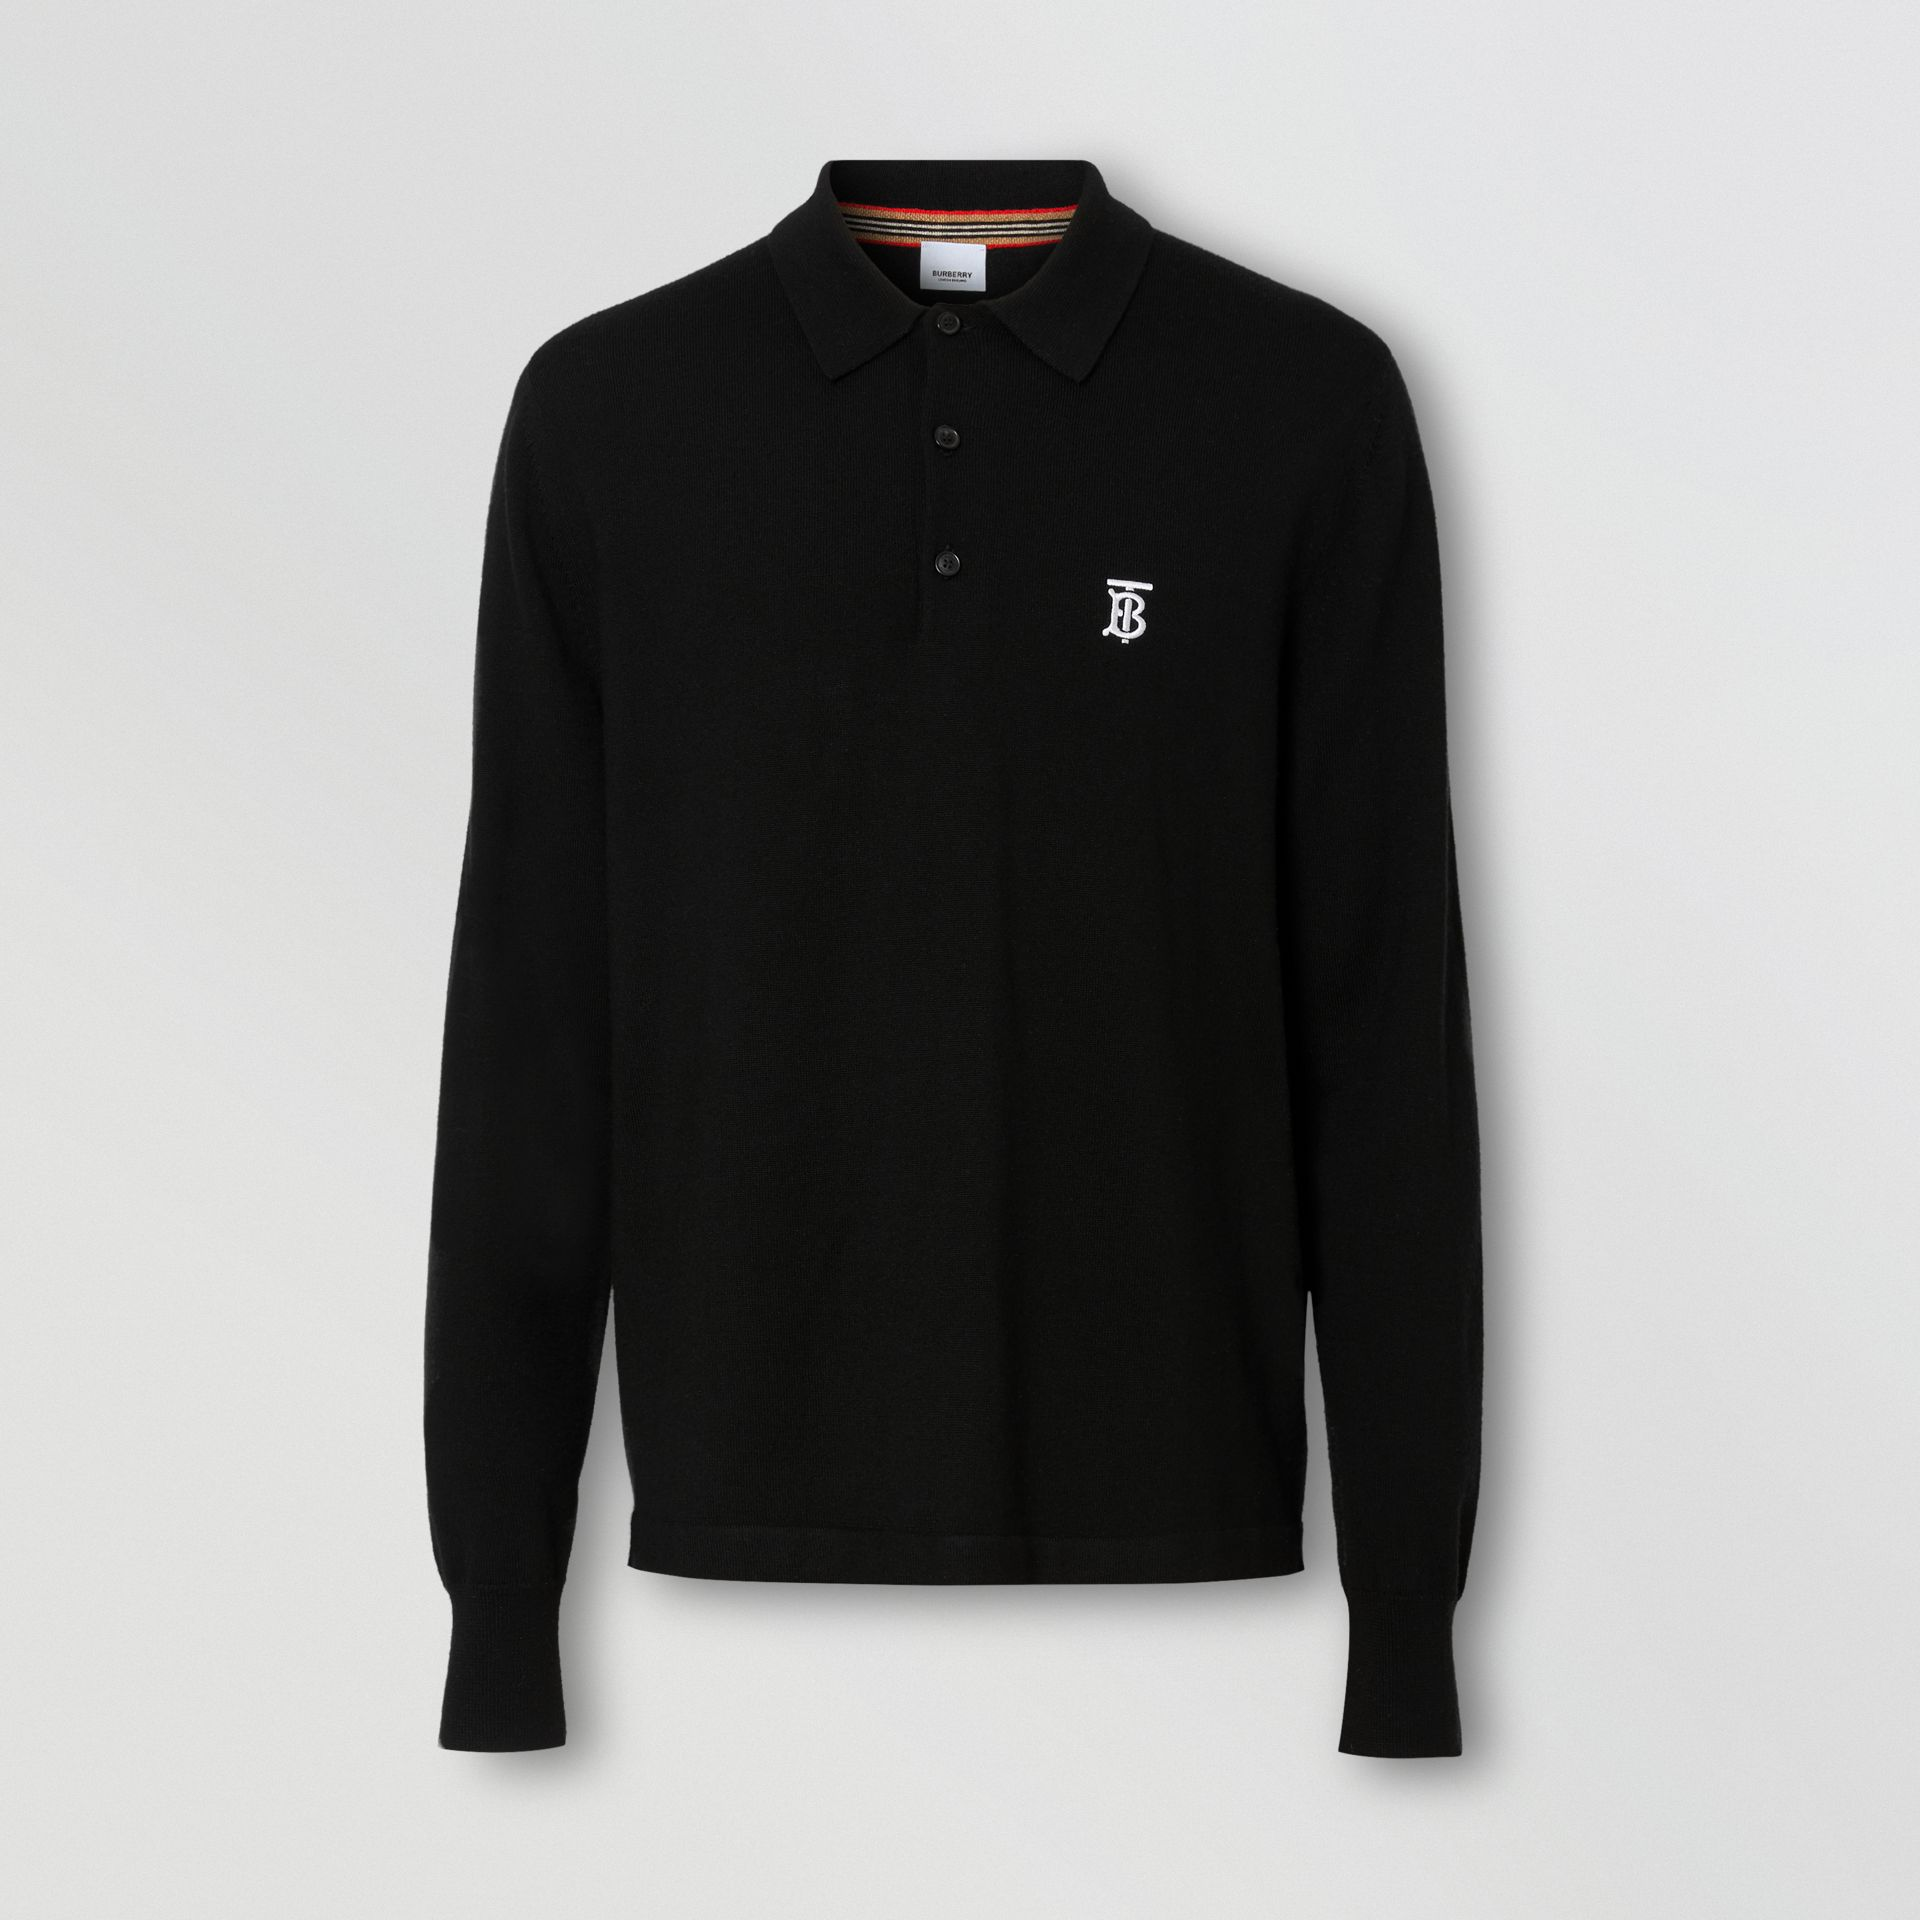 Long-sleeve Monogram Motif Merino Wool Polo Shirt in Black - Men | Burberry Canada - gallery image 3